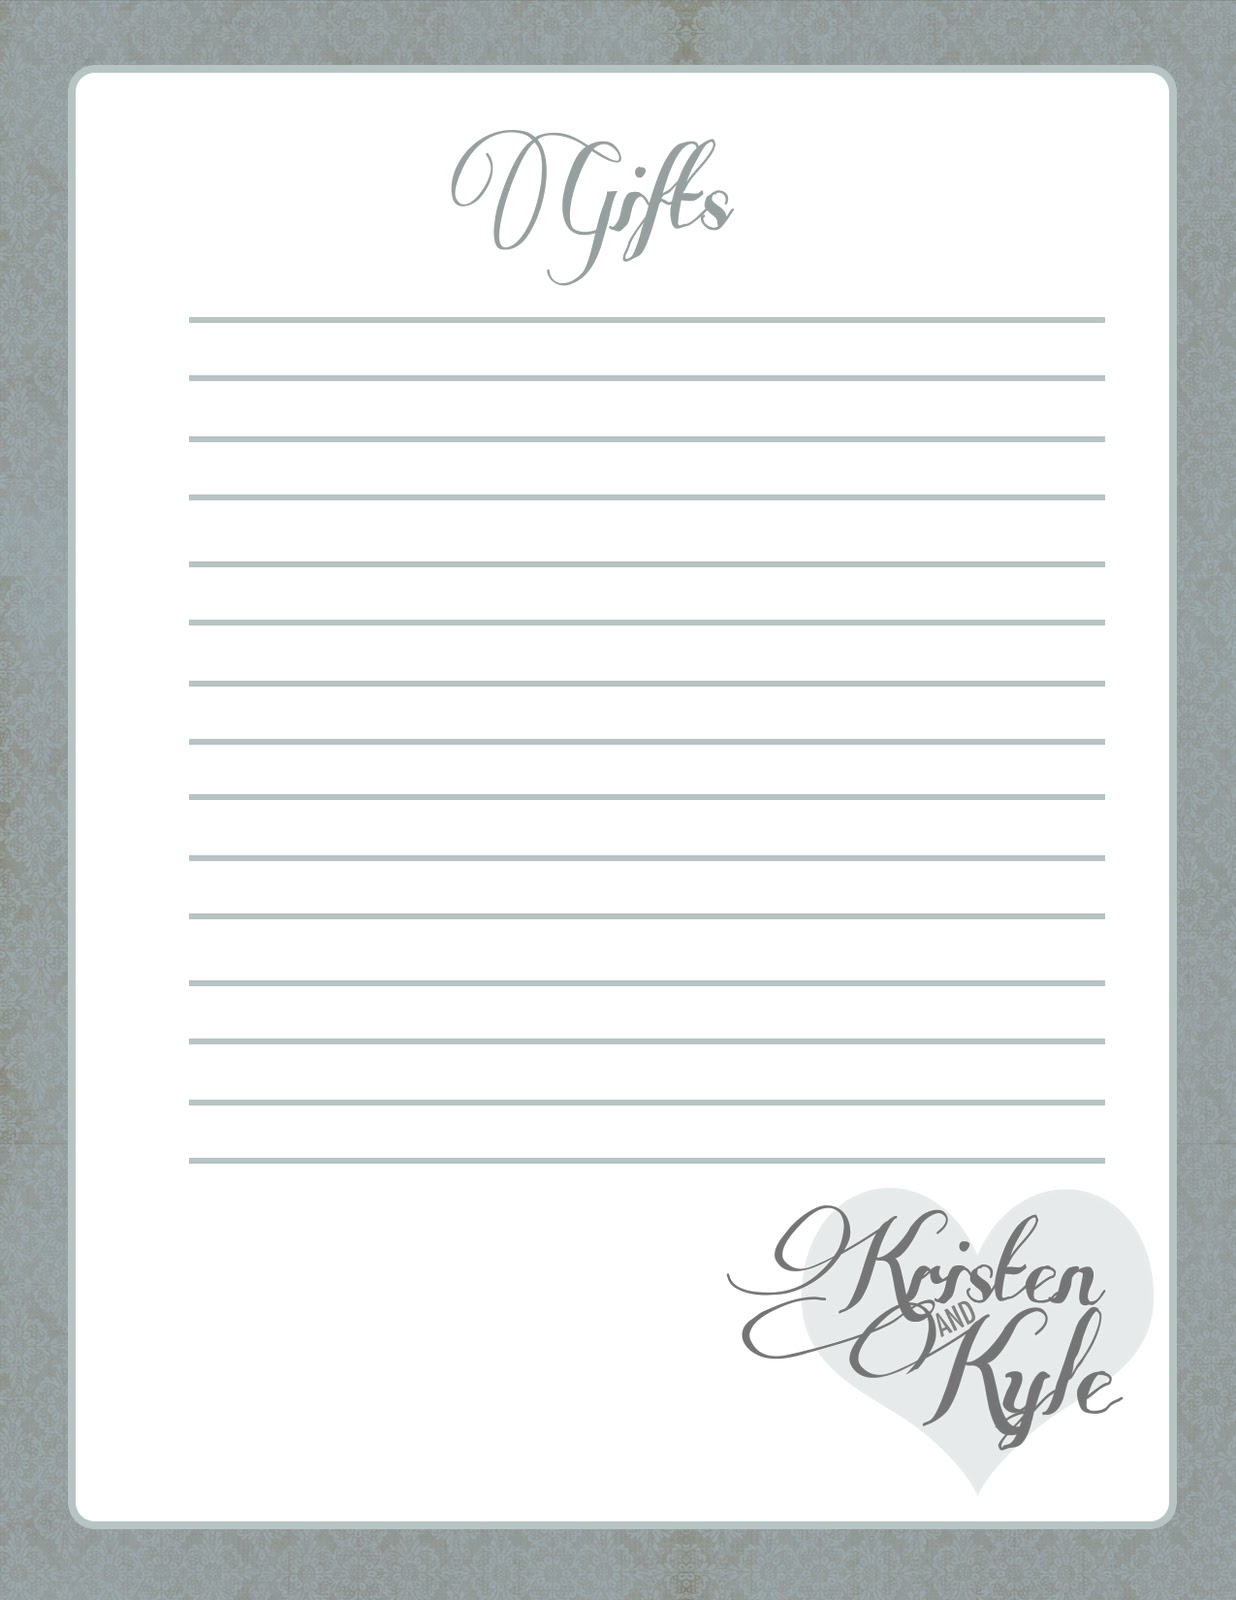 Example Of Wedding Gift List : Bridal+Shower+Gift+List+Template Baby Shower Gift List Event...